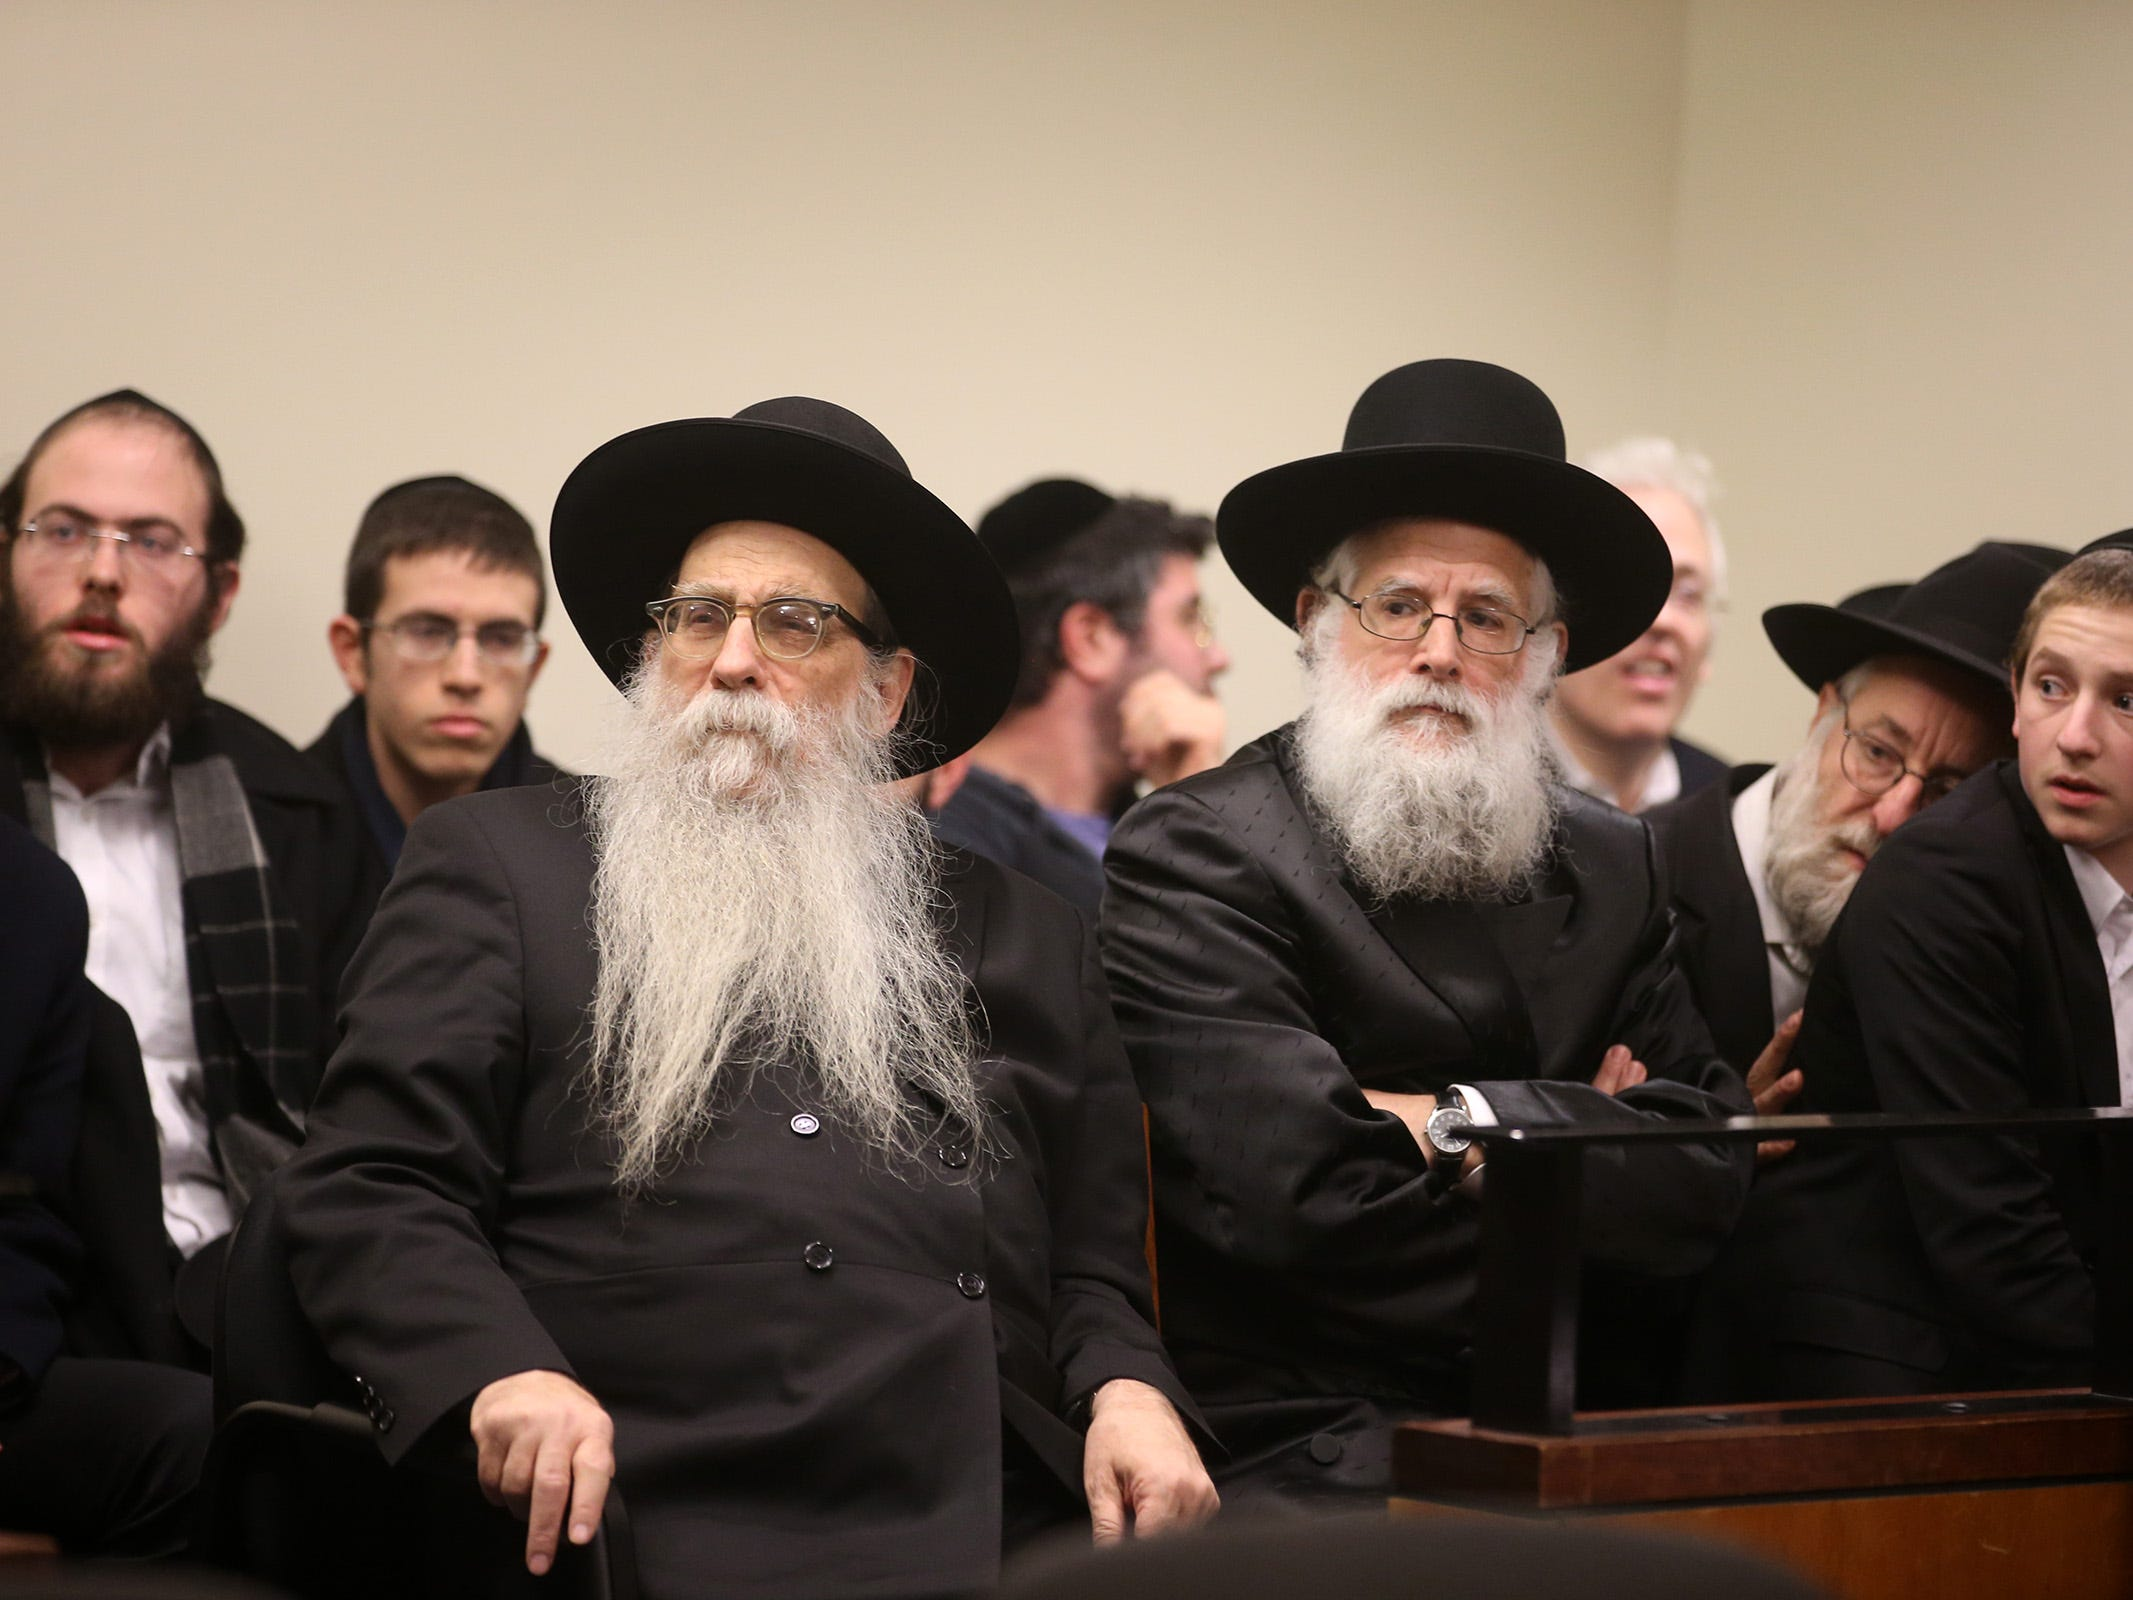 Rabbi Yeruchem Olshin, the dean of BMG, sits in the courtroom gallery as Rabbi Osher Eisemann, founder of Lakewood's School for Children with Hidden Intelligence and who is facing criminal charges alleging misuse of public money, appears before Judge Benjamin Bucca at the Middlesex County Courthouse in New Brunswick, NJ Friday, November 16, 2018.  His lawyer, Lee Vartan, is arguing the indictment should be dismissed because an amount equal to the taxpayer dollars allotted to the school was spent on legitimate purchases.